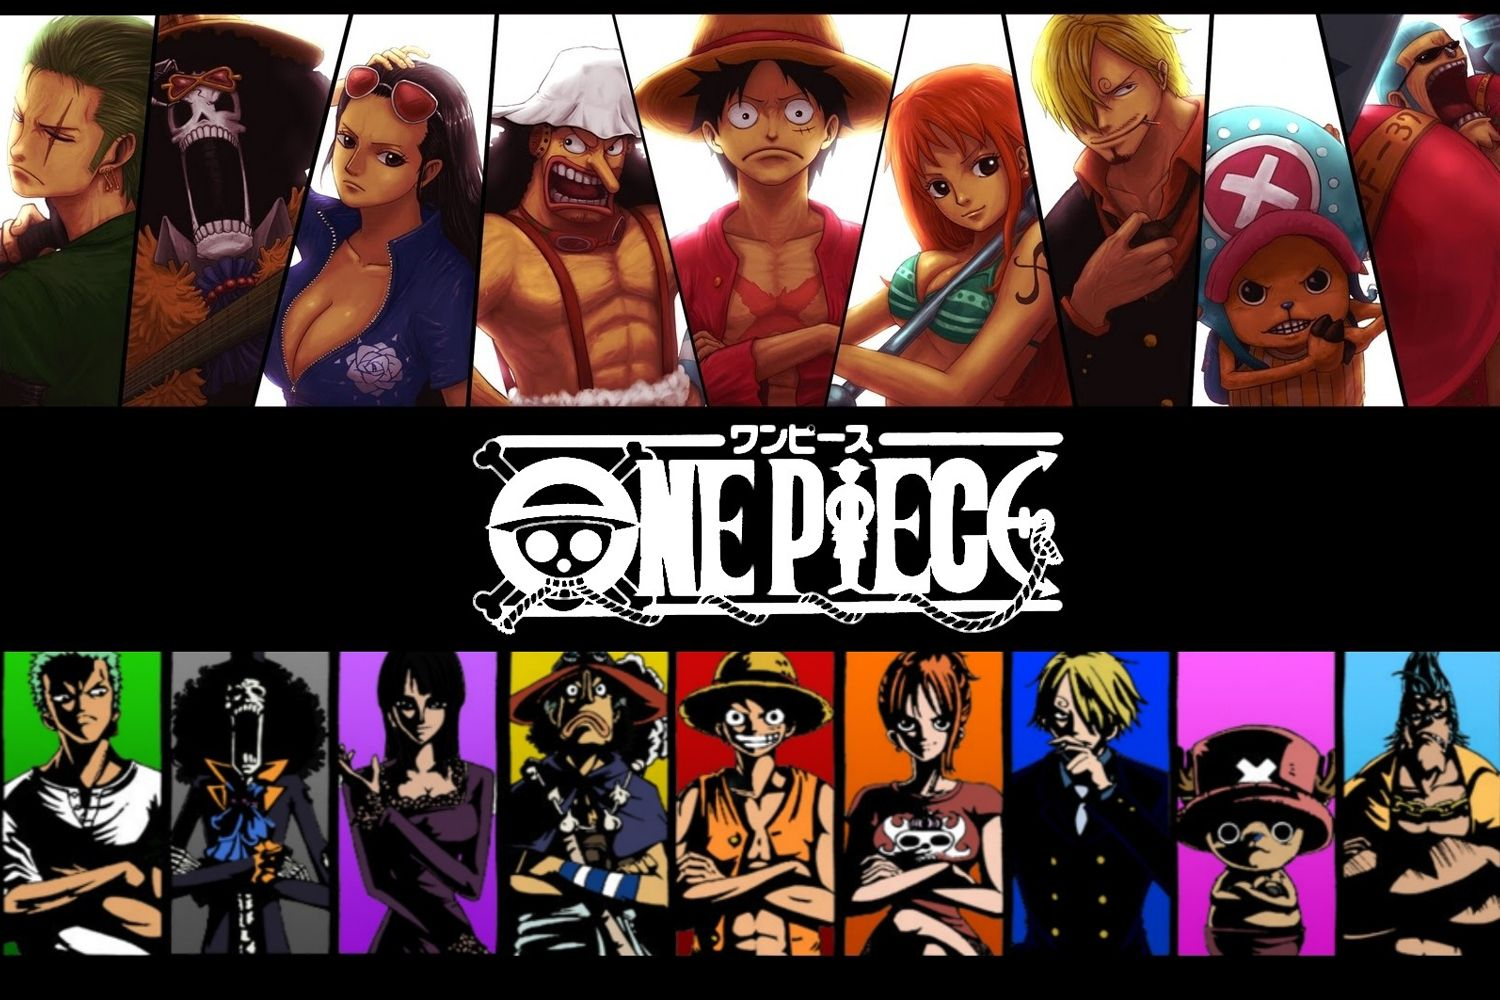 Top 10 Best One Piece New World Wallpapers Hd One Piece New World One Piece Crew One Piece All Characters